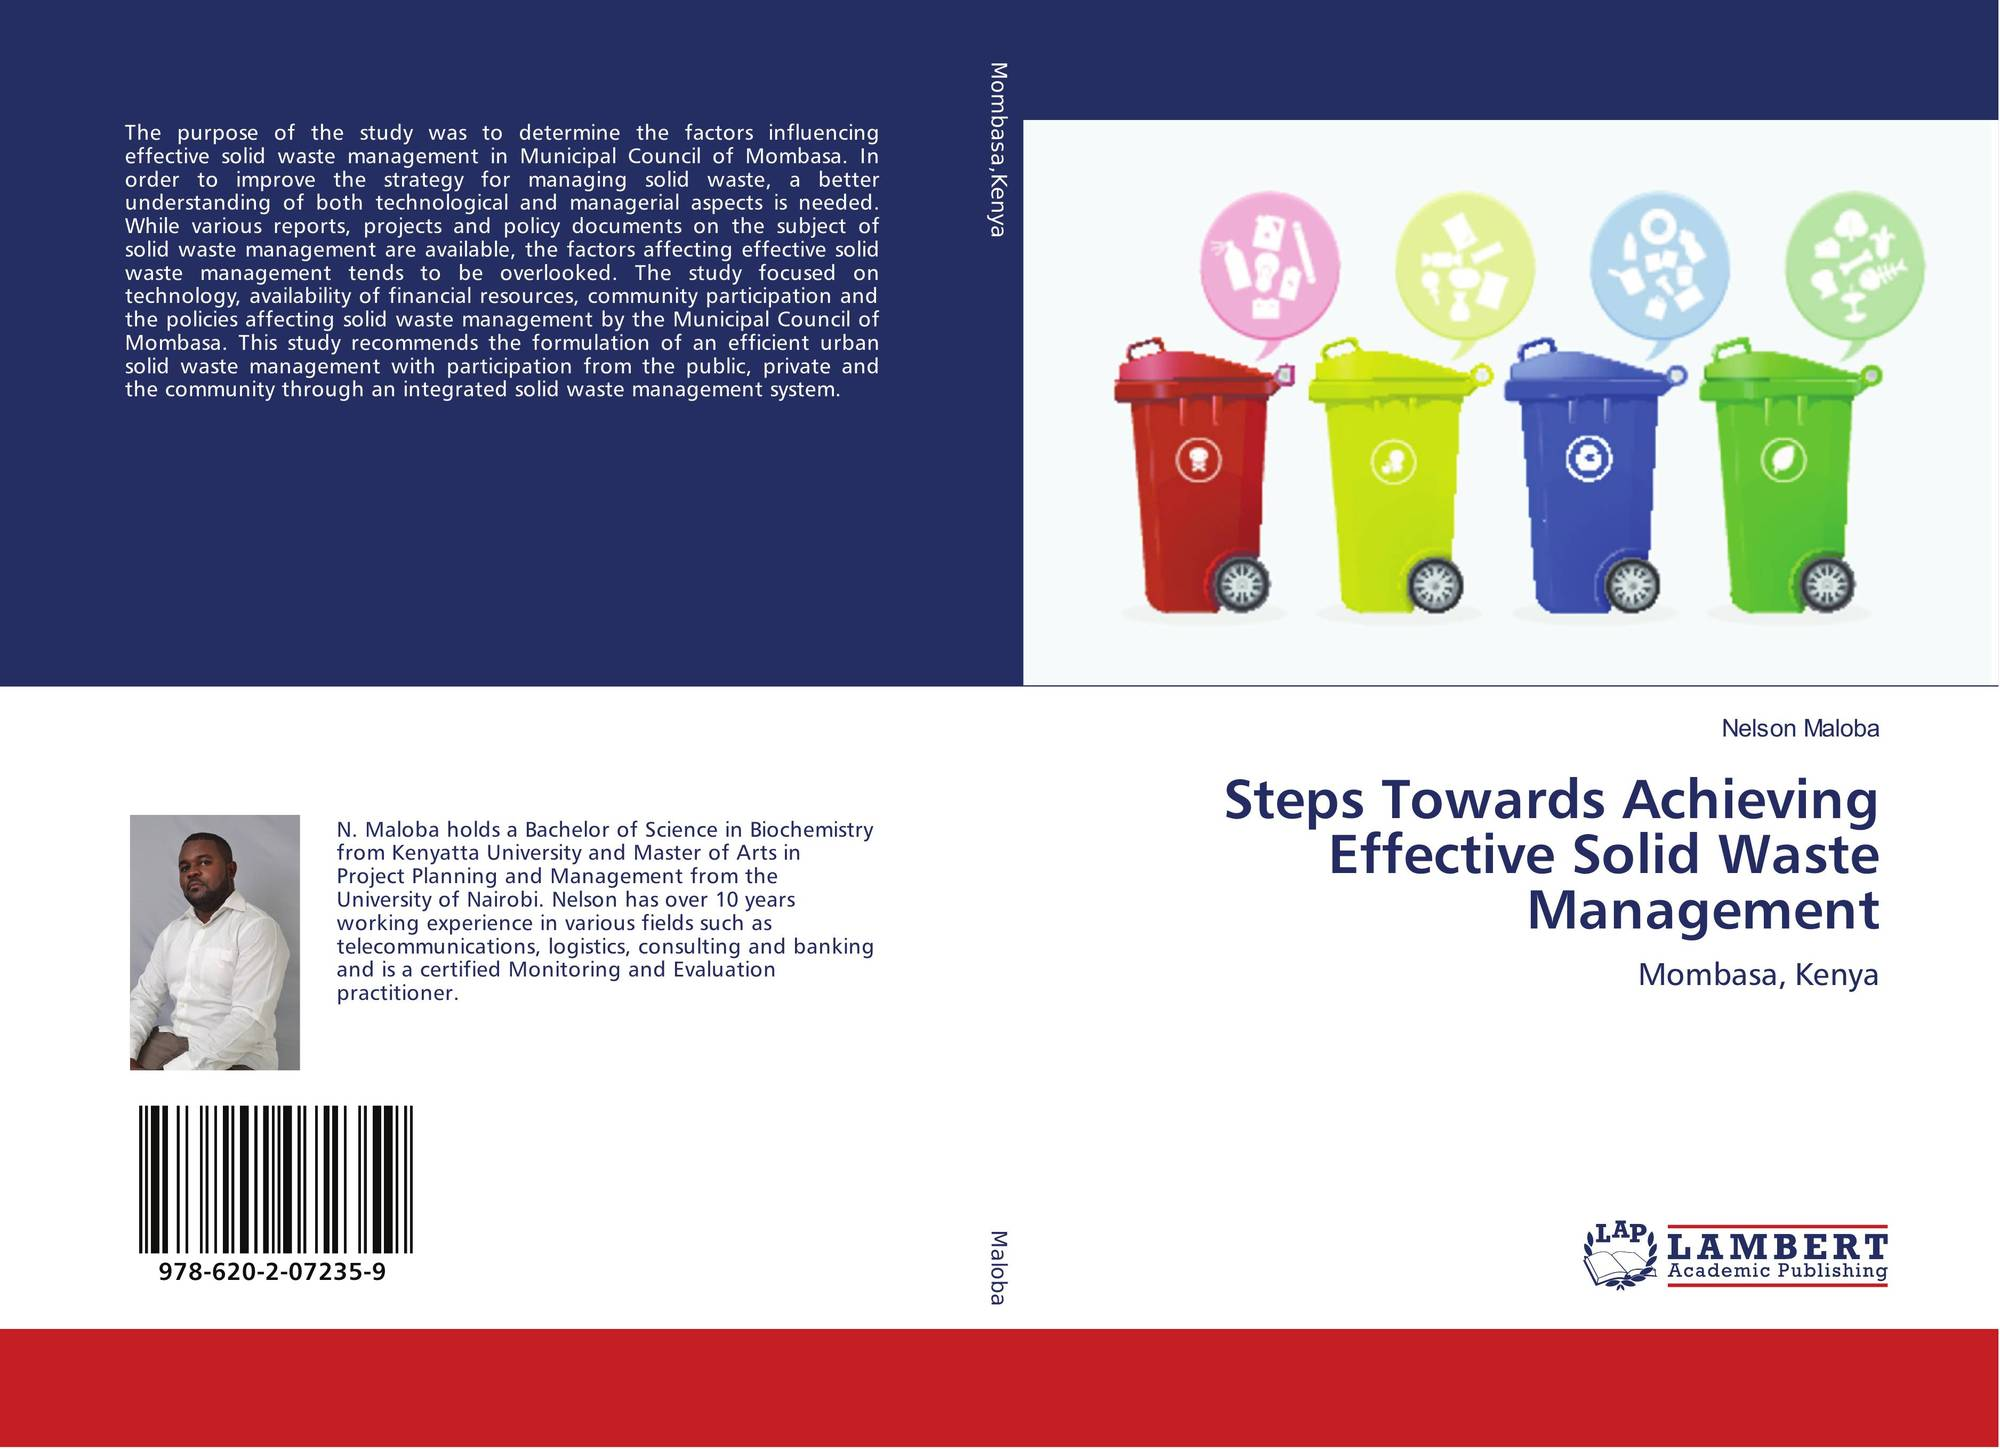 community participation in solid waste management Lauwo, h a (2005) prospects for community participation in solid waste management : a case of korogwe town council, tanga region, tanzania retrieved from .